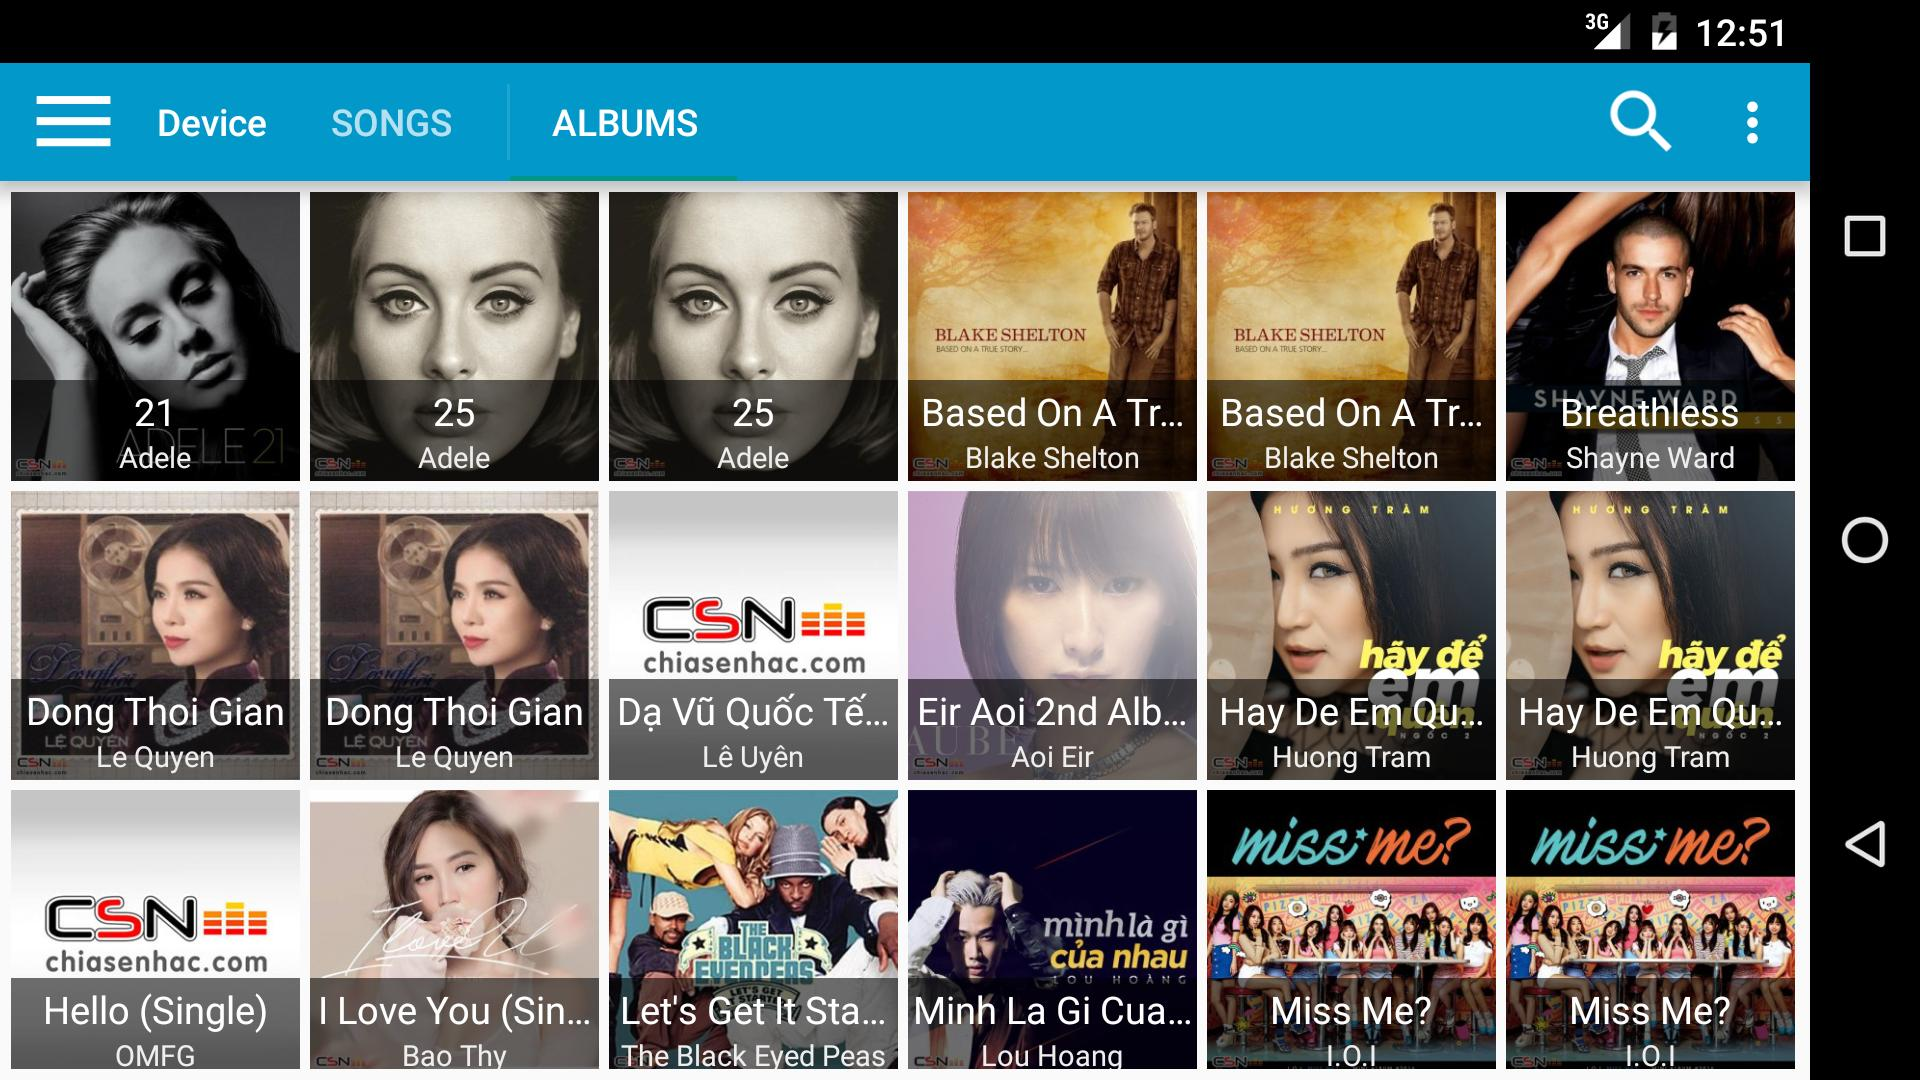 Chia Se Nhac (Lossless music) for Android - APK Download